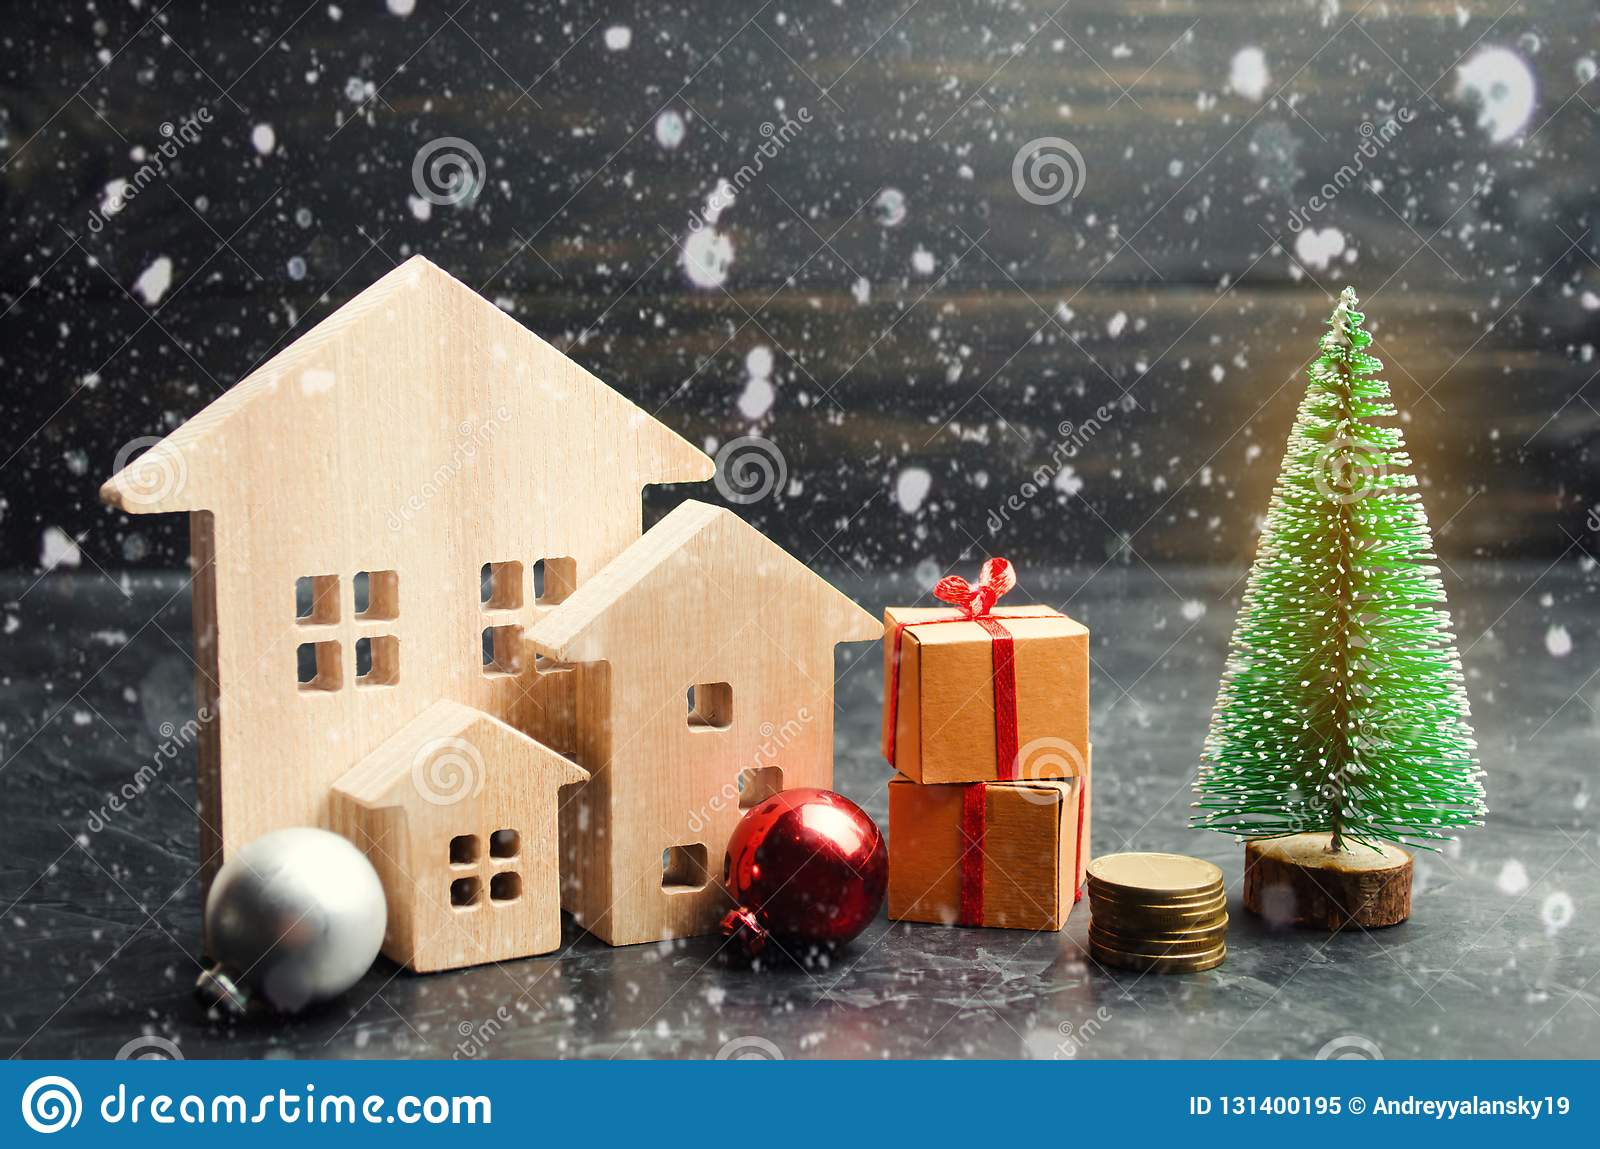 Wooden houses and Christmas tree. Christmas Sale of Real Estate. New Year discounts for buying house. Purchase apartments at a low